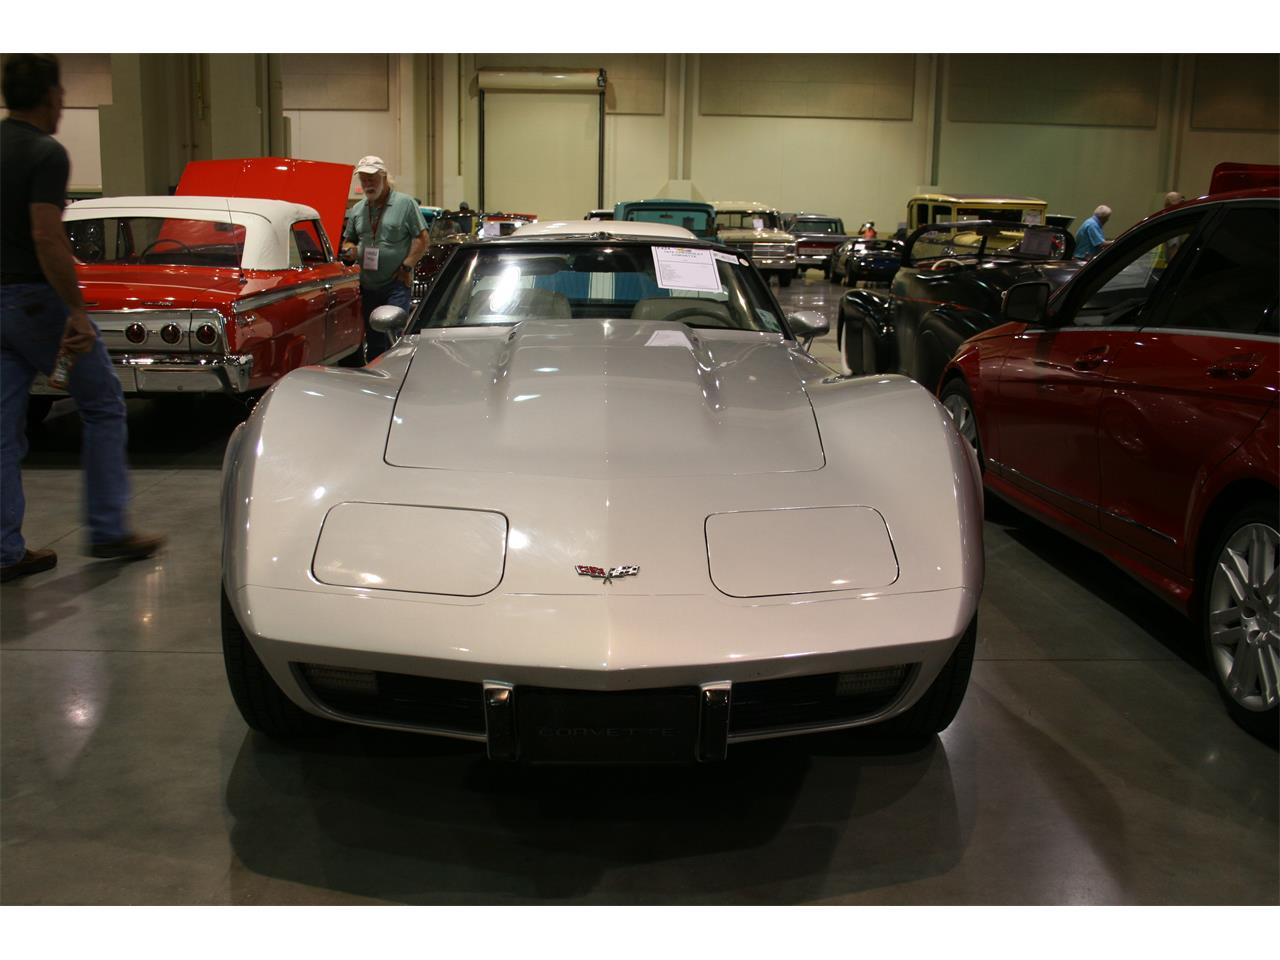 Chevrolet Corvette For Sale ClassicCarscom CC - Nocona car show